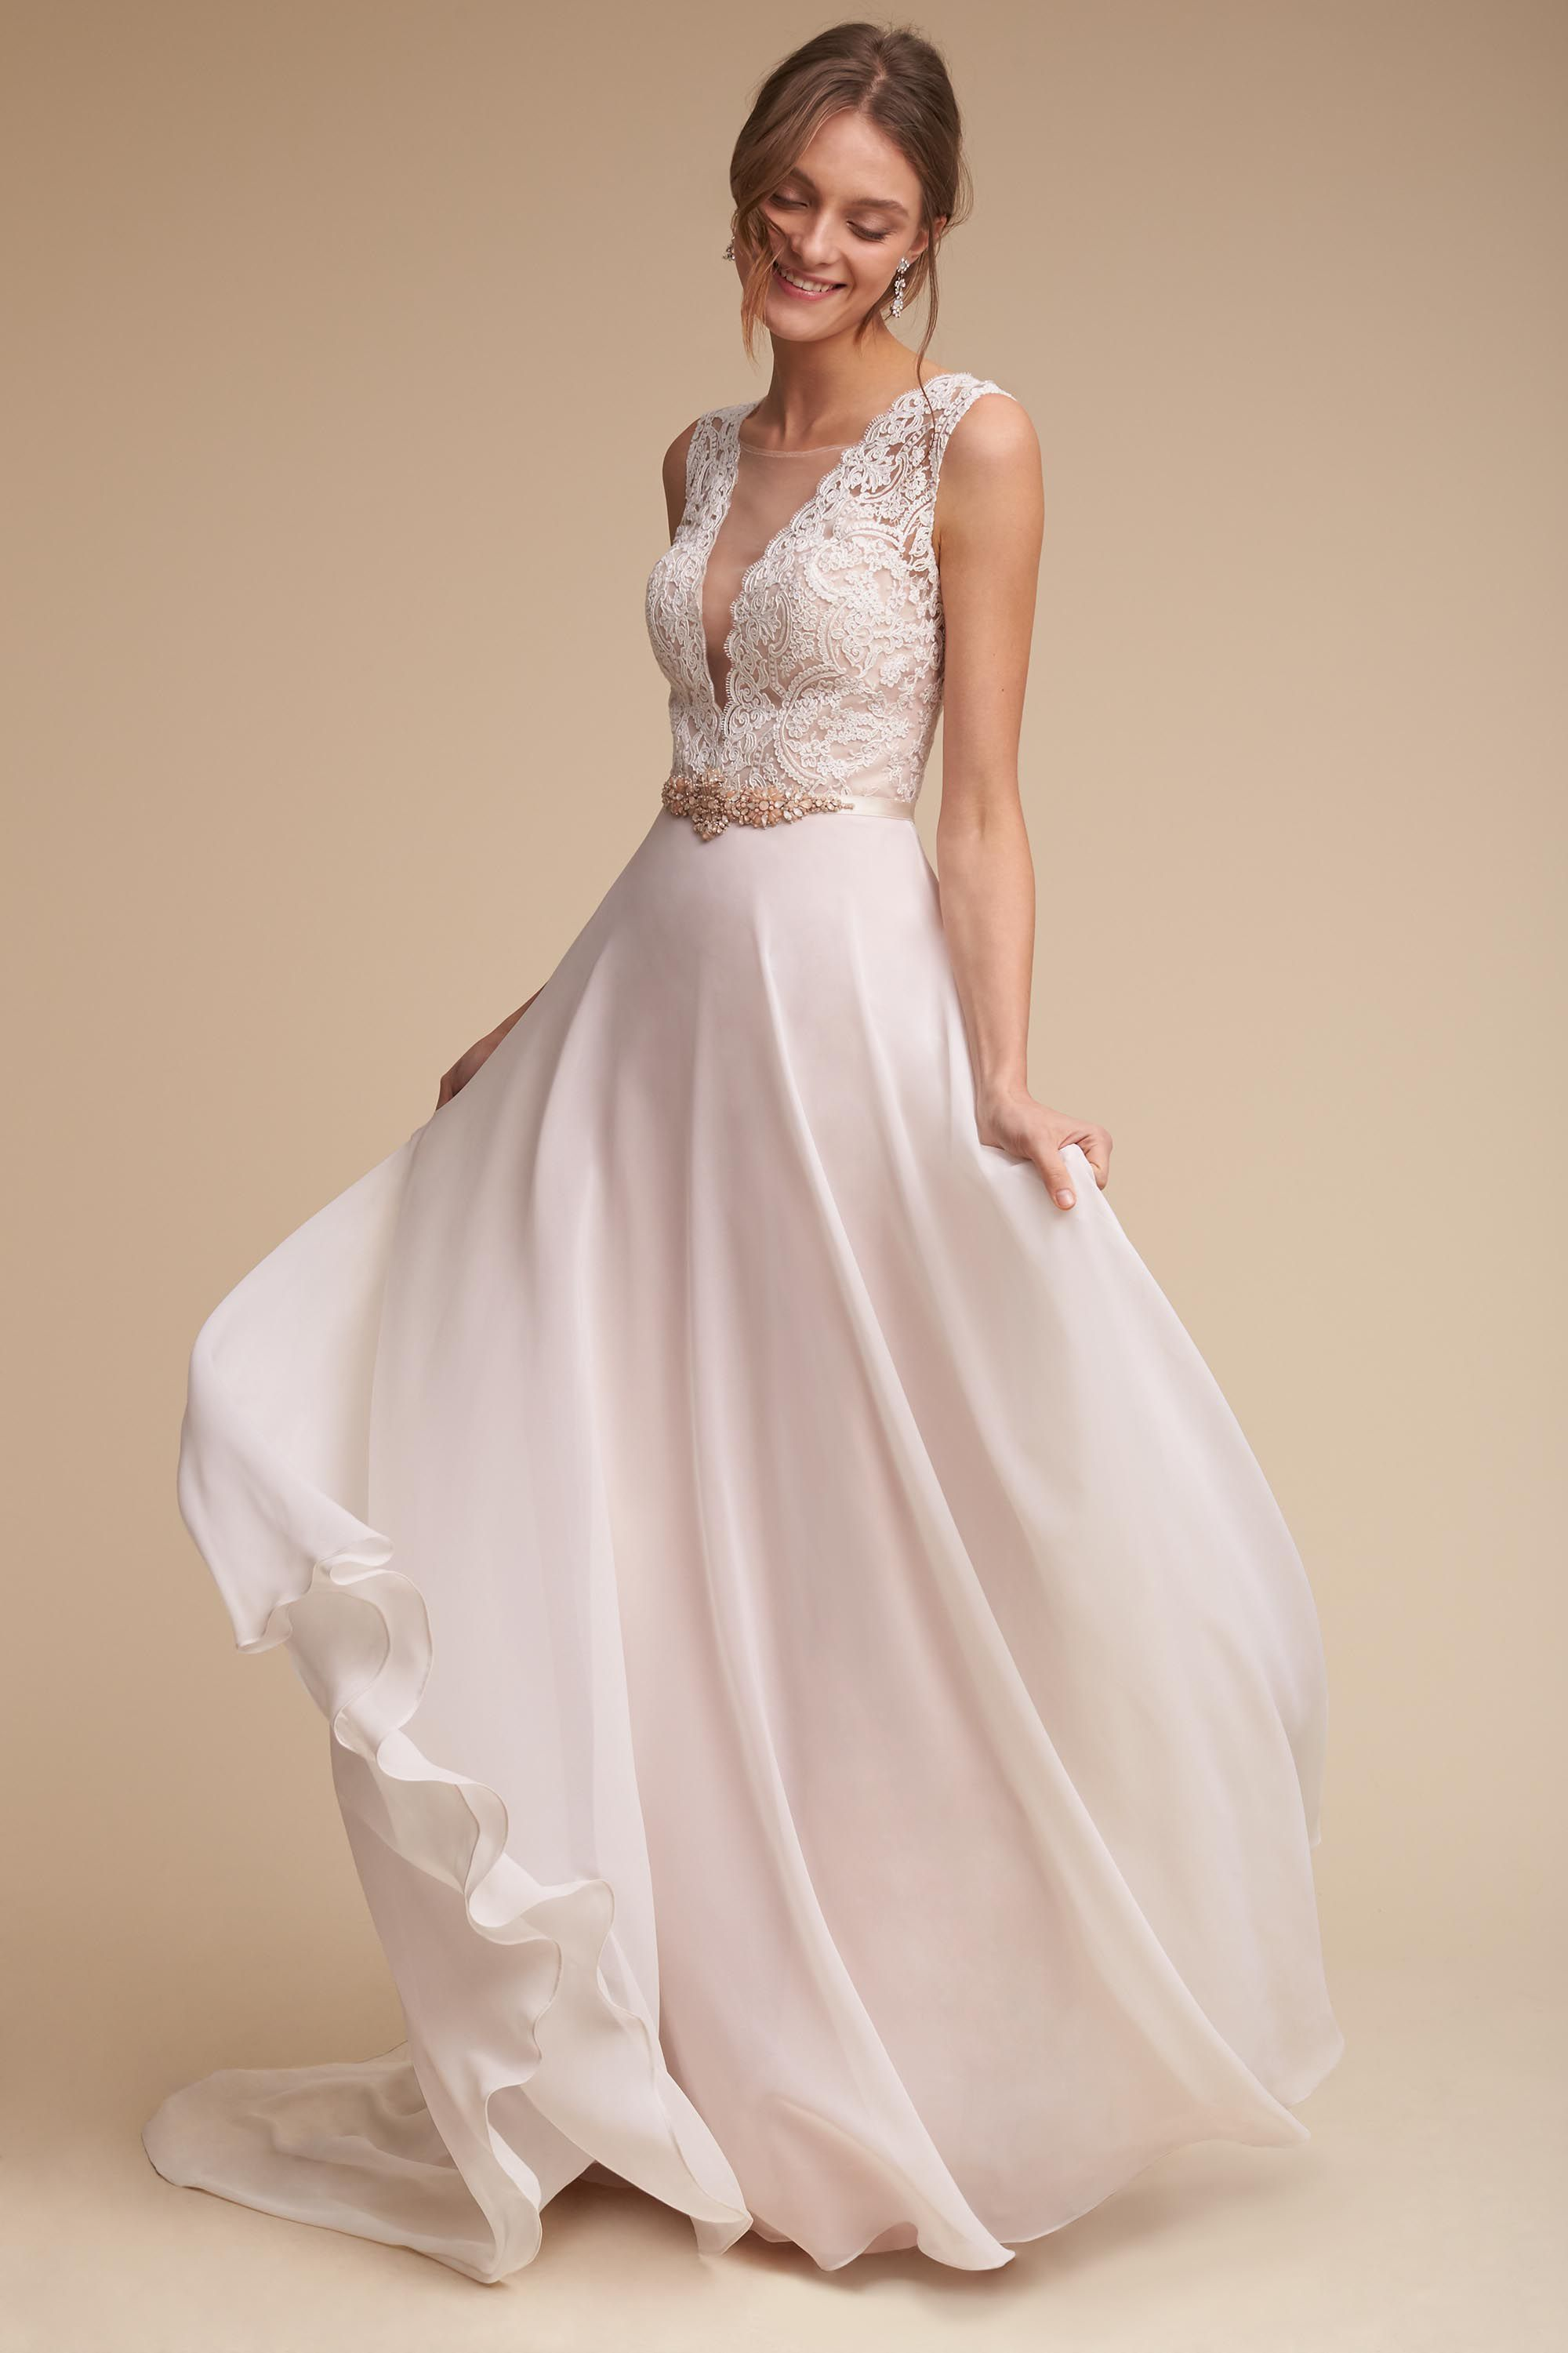 Long sleeve casual wedding dress   Beach Wedding Dresses That Will Make You Fall In Love All Over